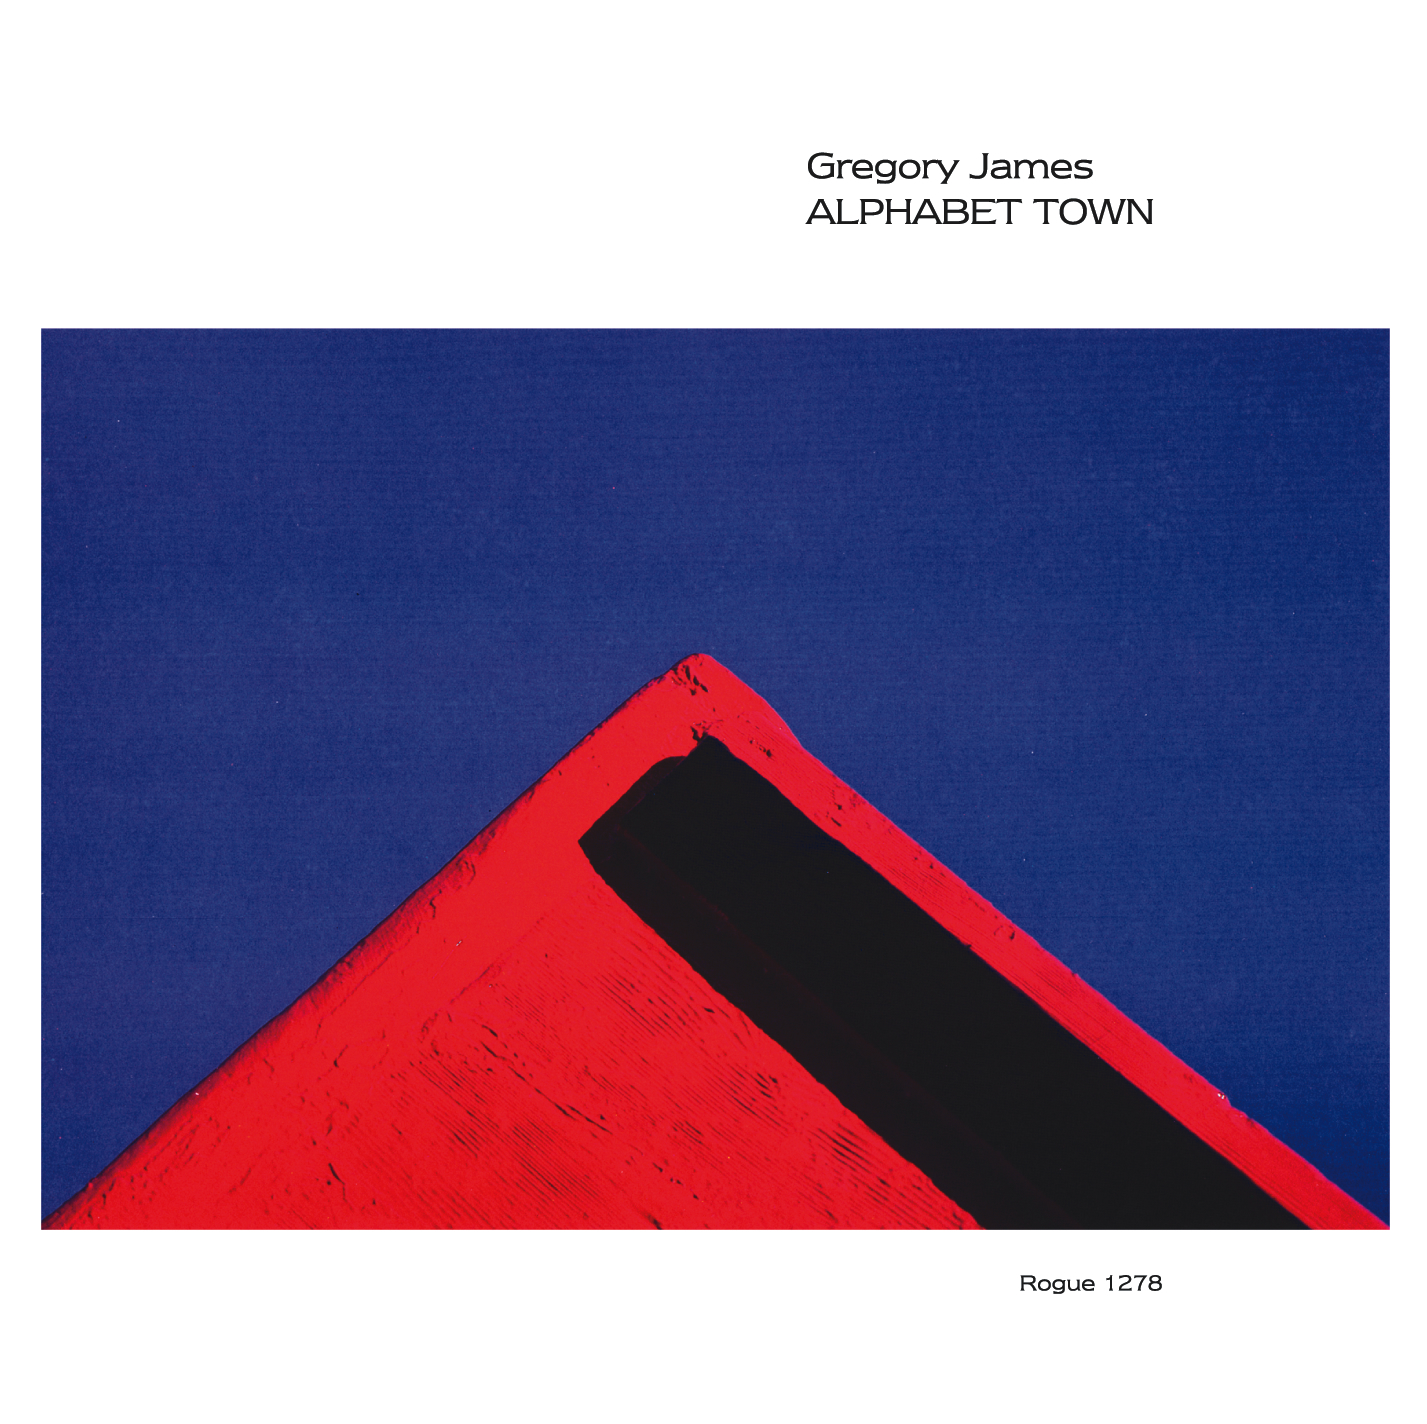 Gregory James - Alphabet Town - Valence Records - Cover Image